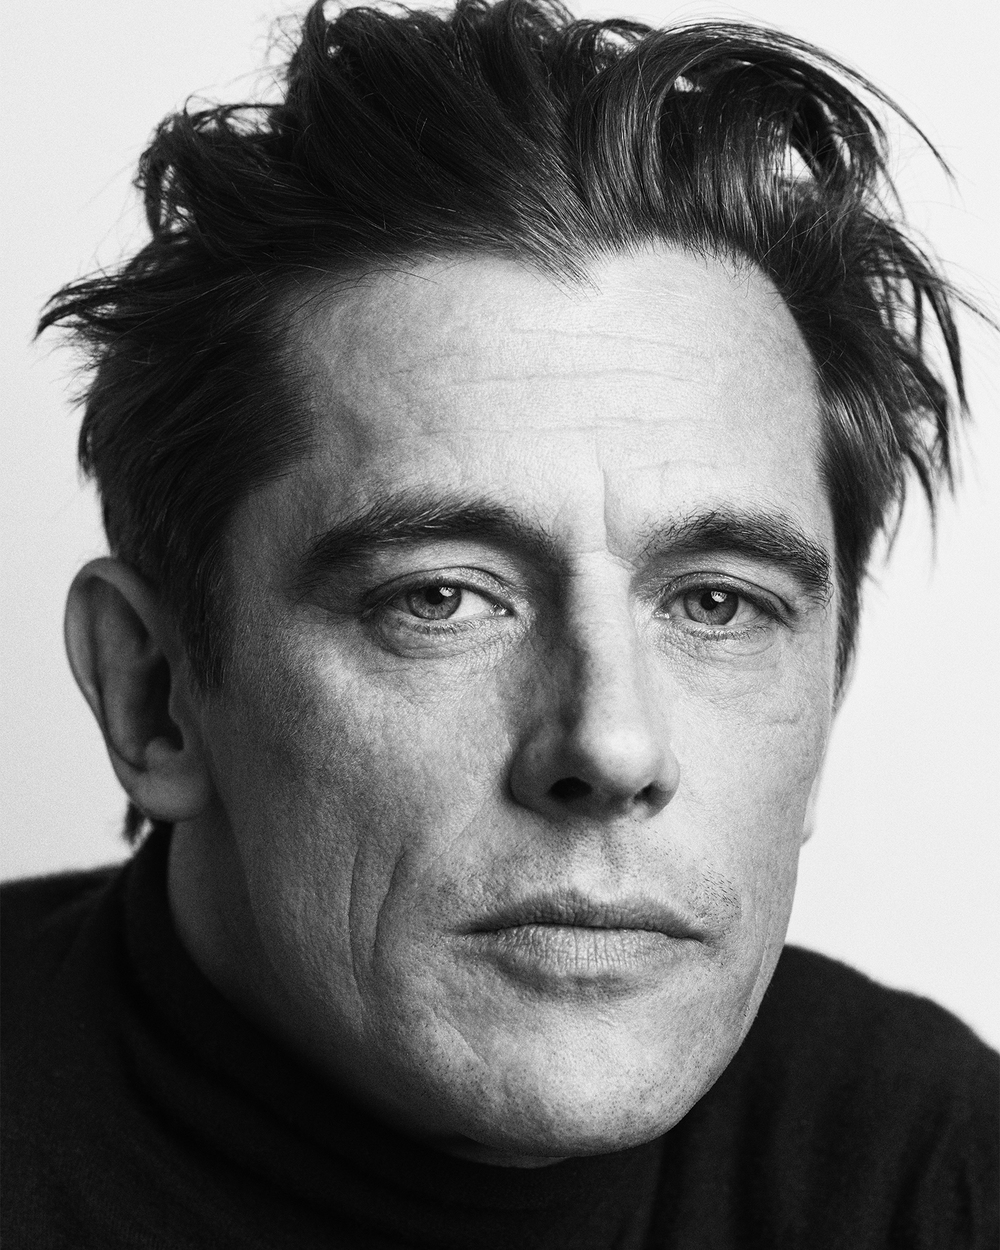 Werner Schreyer – Model